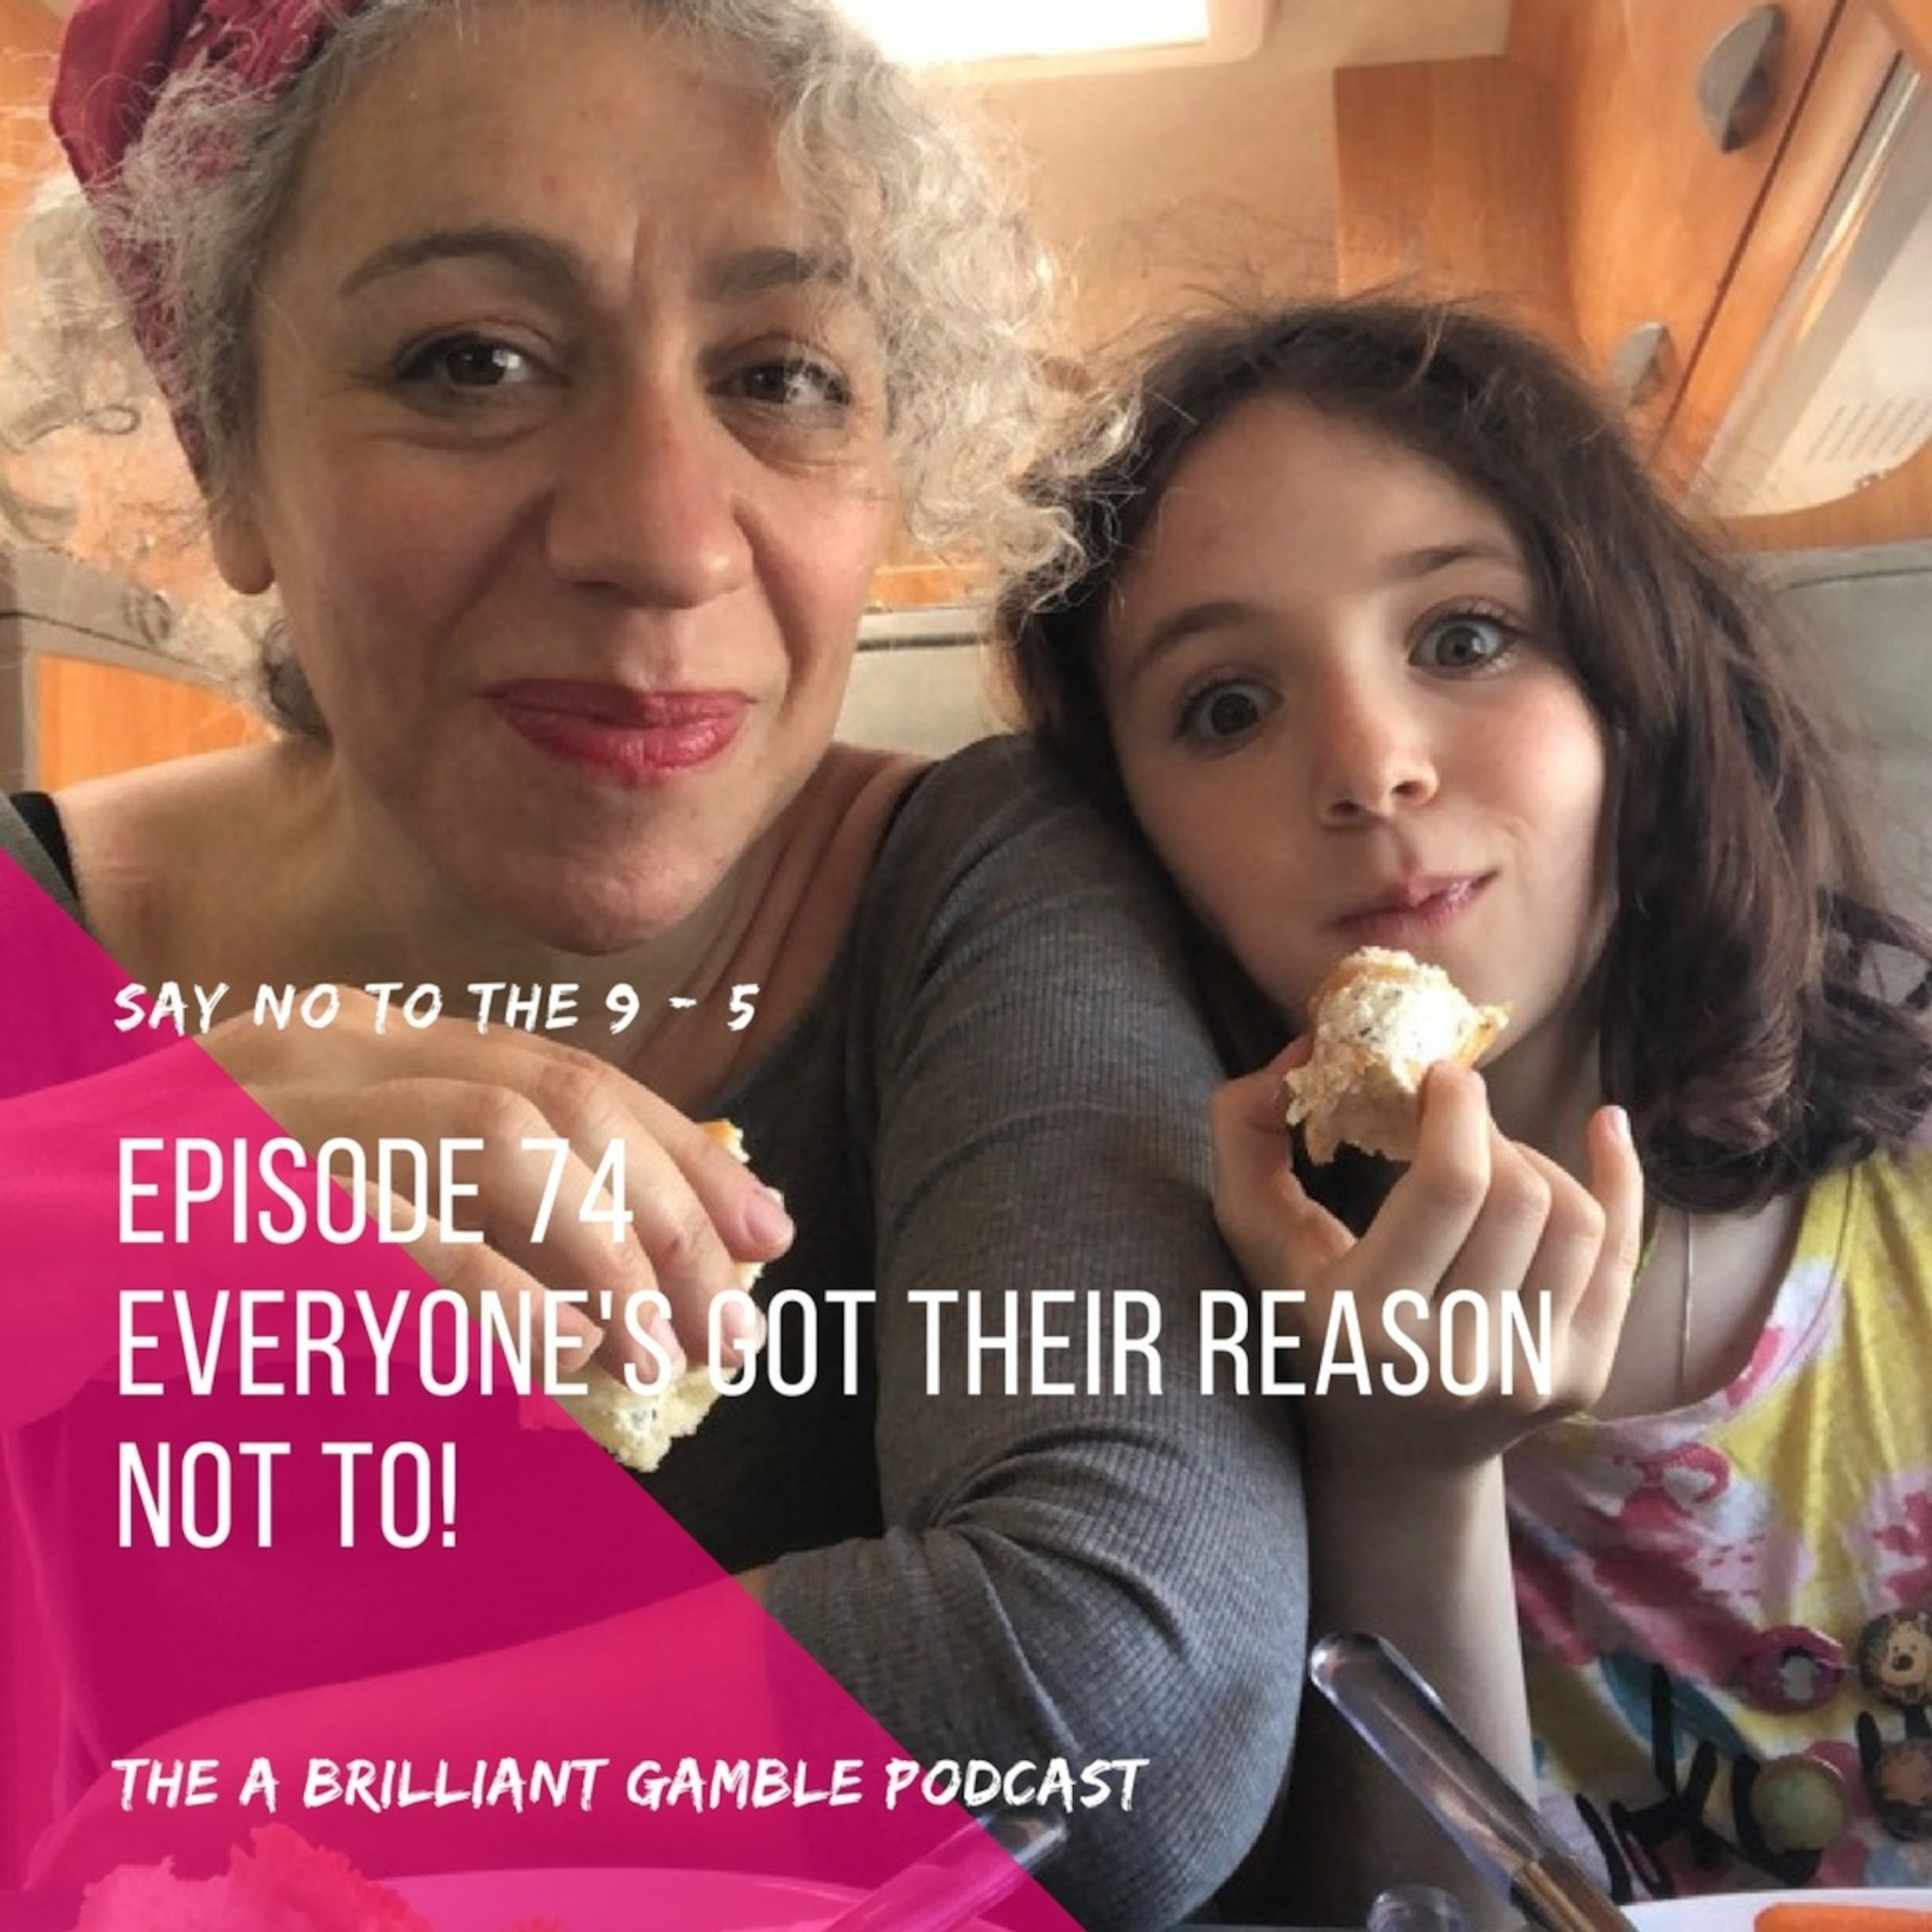 Episode 74: Everyone's Got Their Reason Not To!